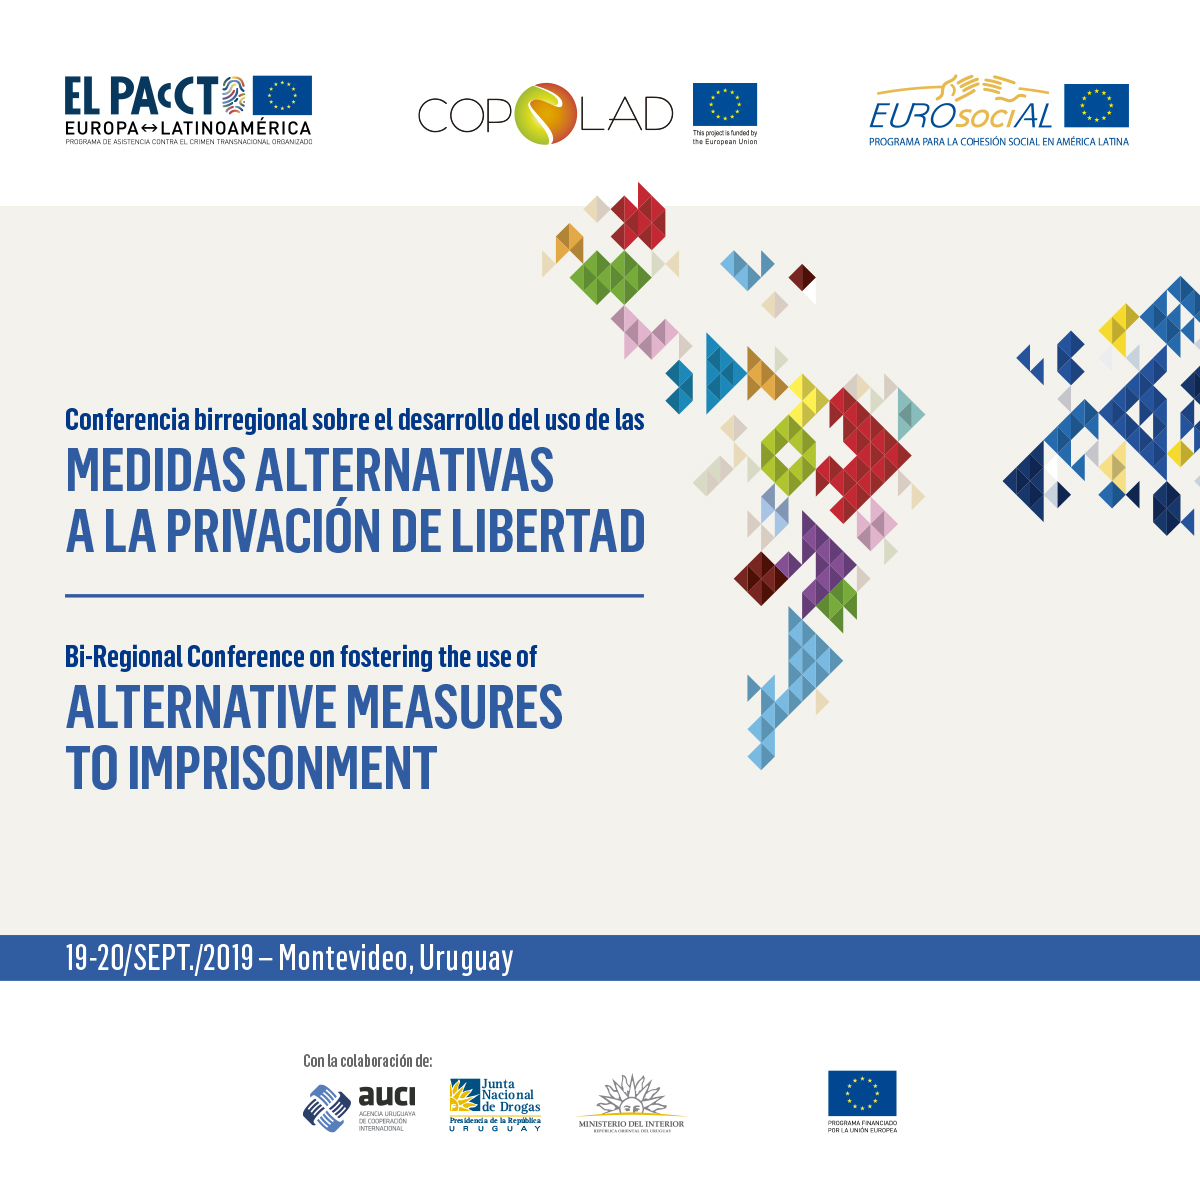 Uruguay hosts Bi-Regional Conference on Alternative Measures for Deprivation of Liberty